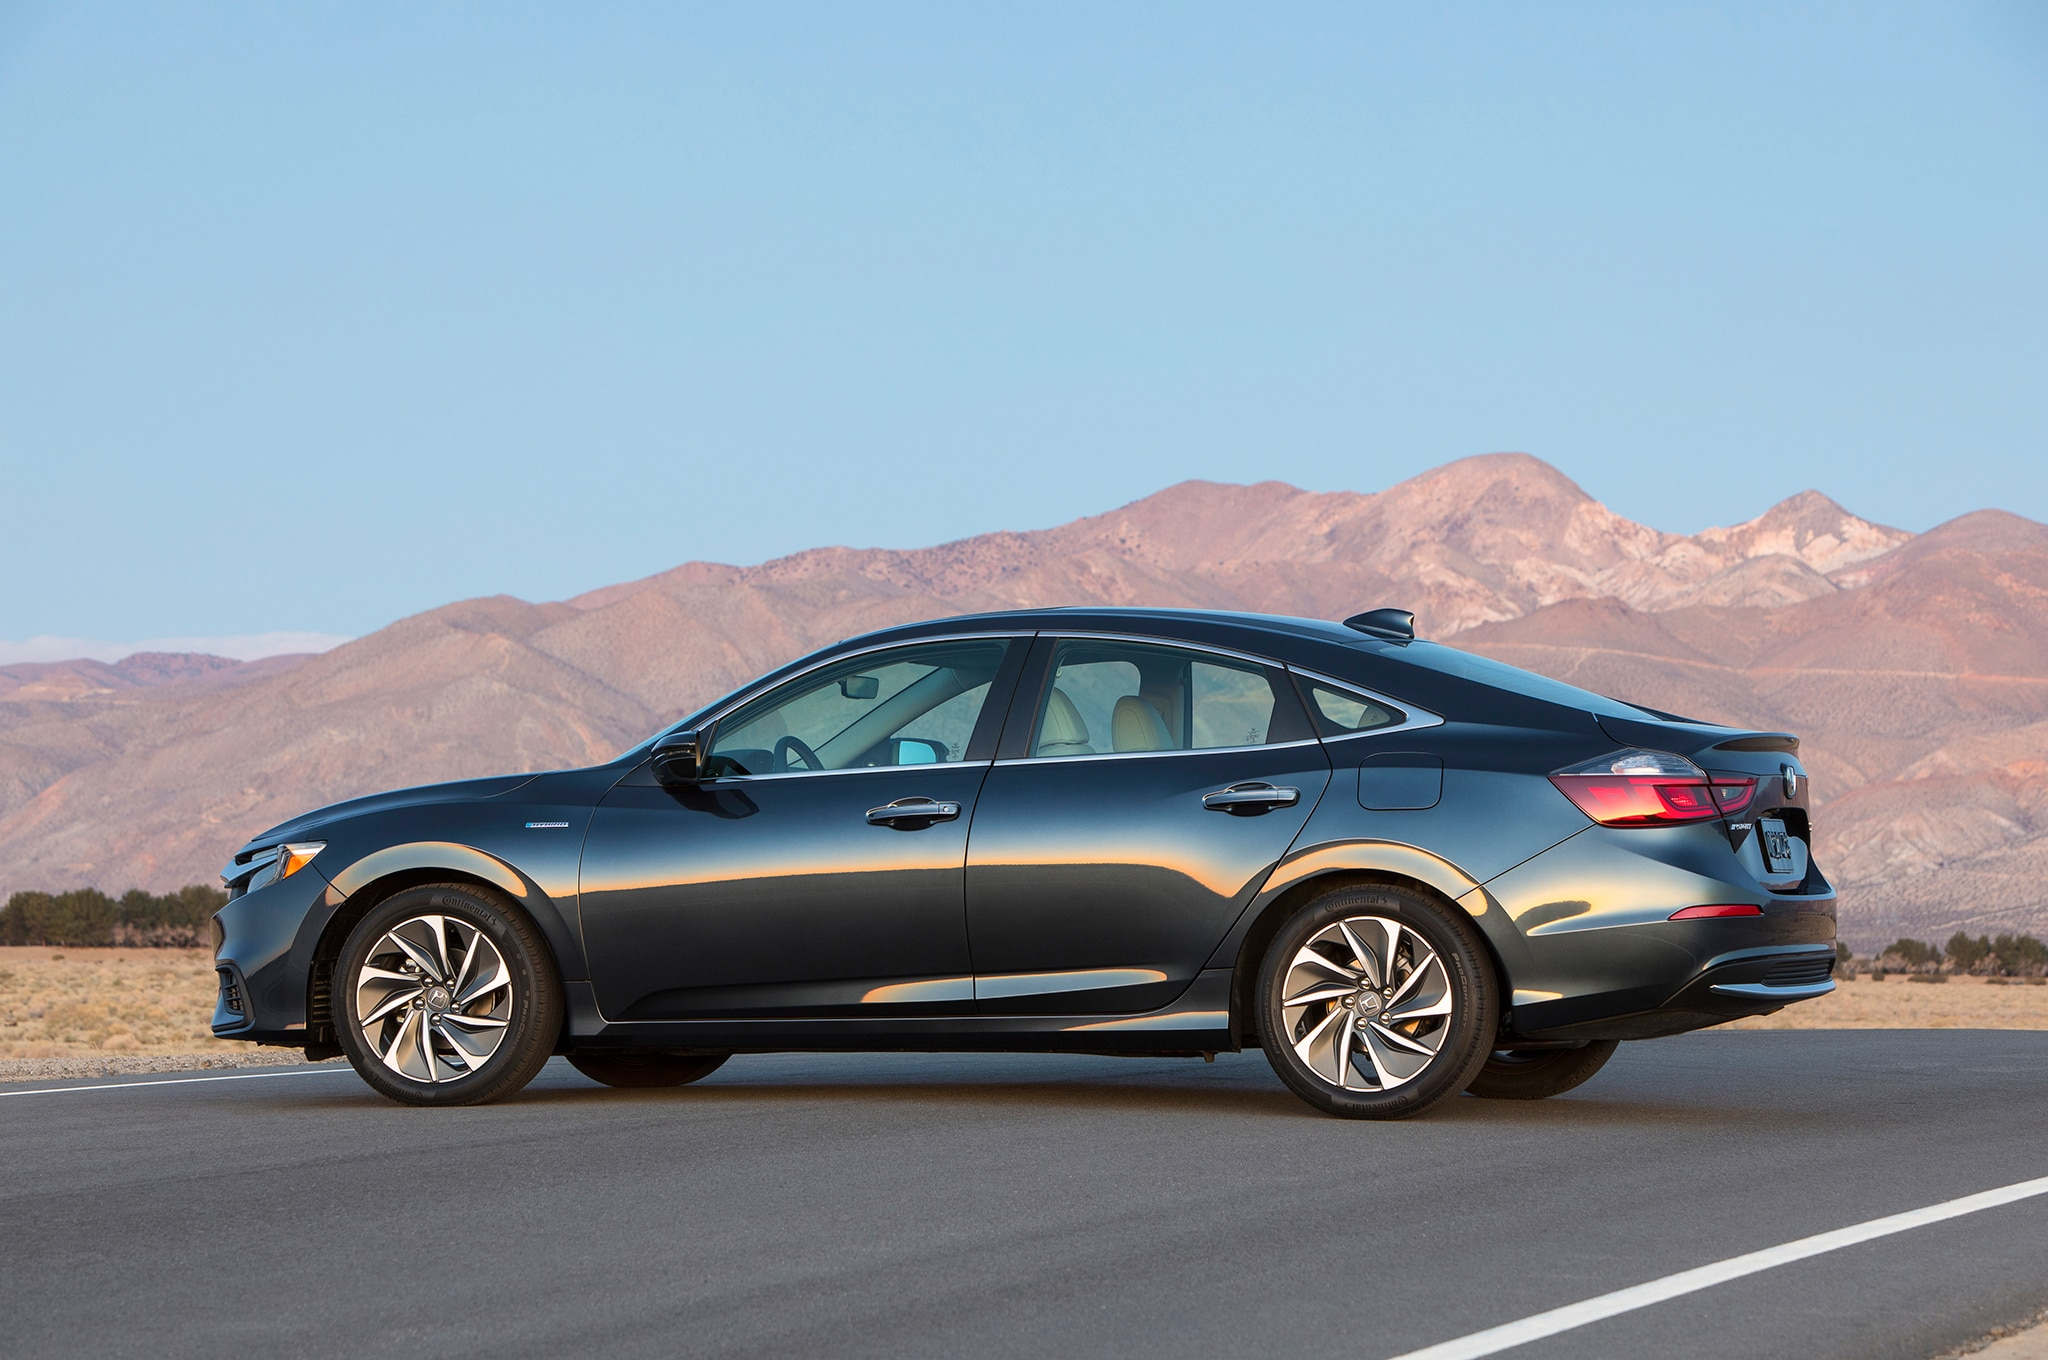 Build A Honda >> 2019 Honda Insight Gets Up to 55 MPG | Automobile Magazine